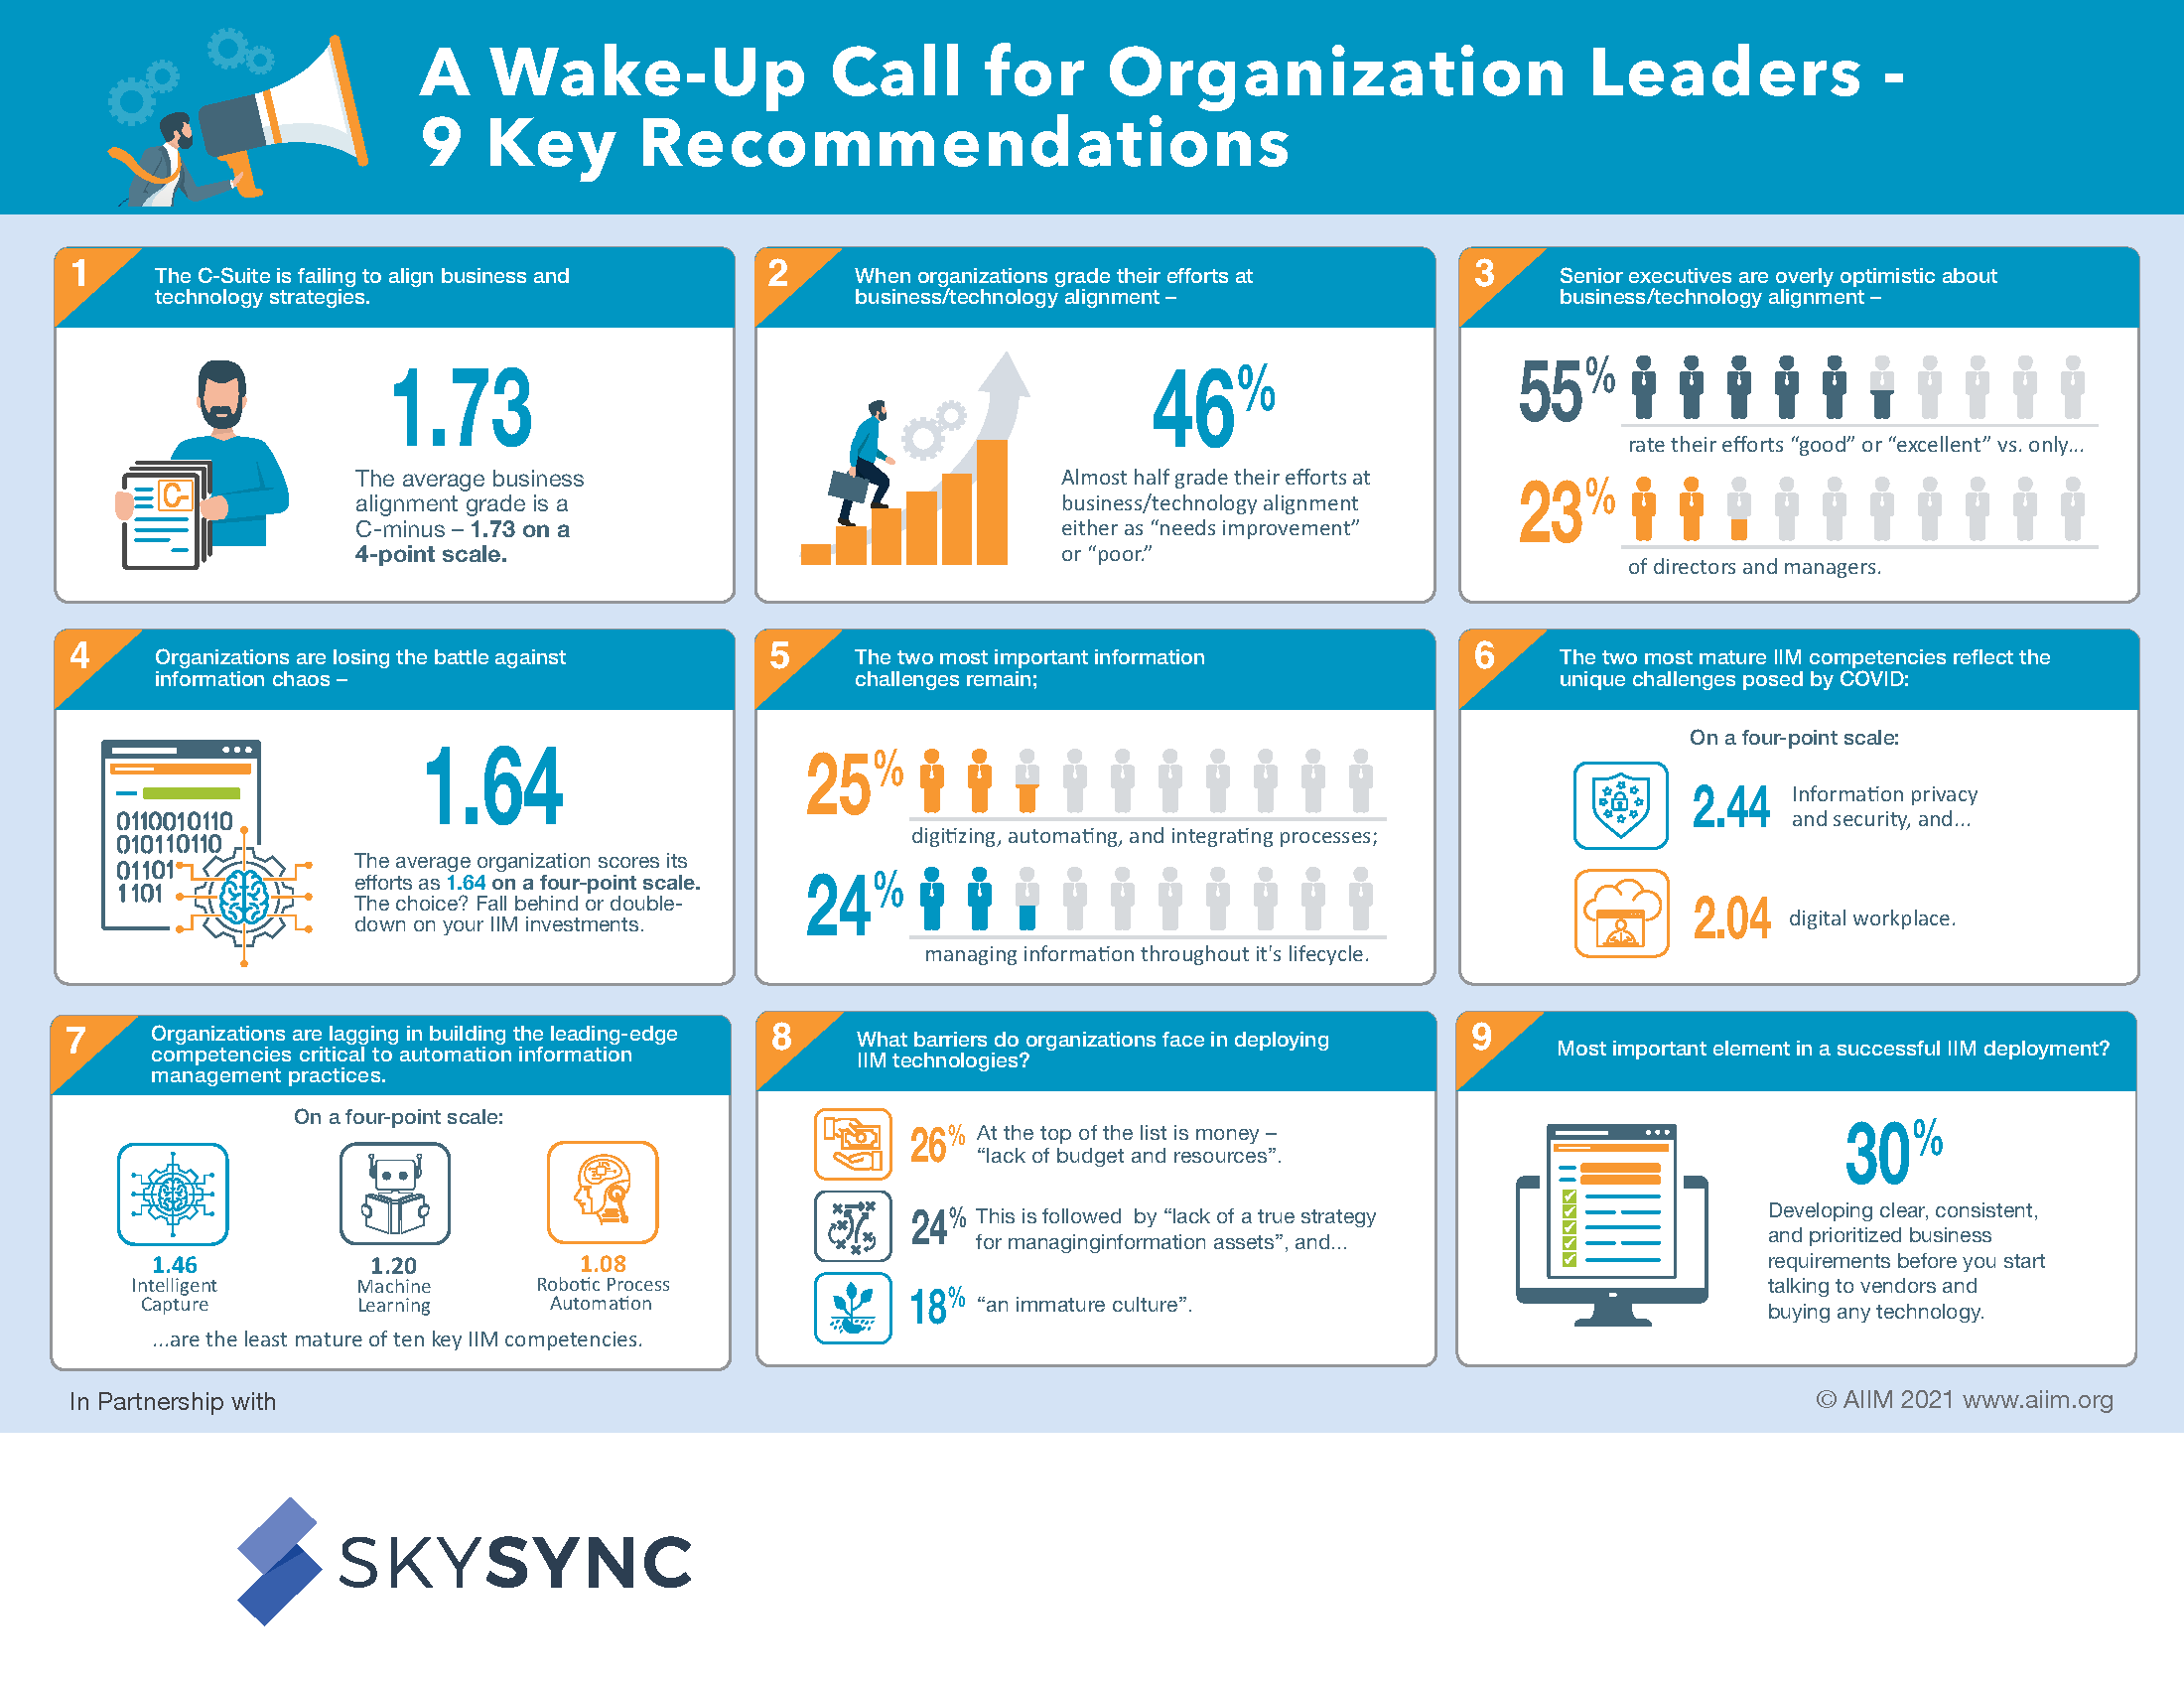 9 Key Recommendations for Organizational Leaders AIIM Infographic SkySync